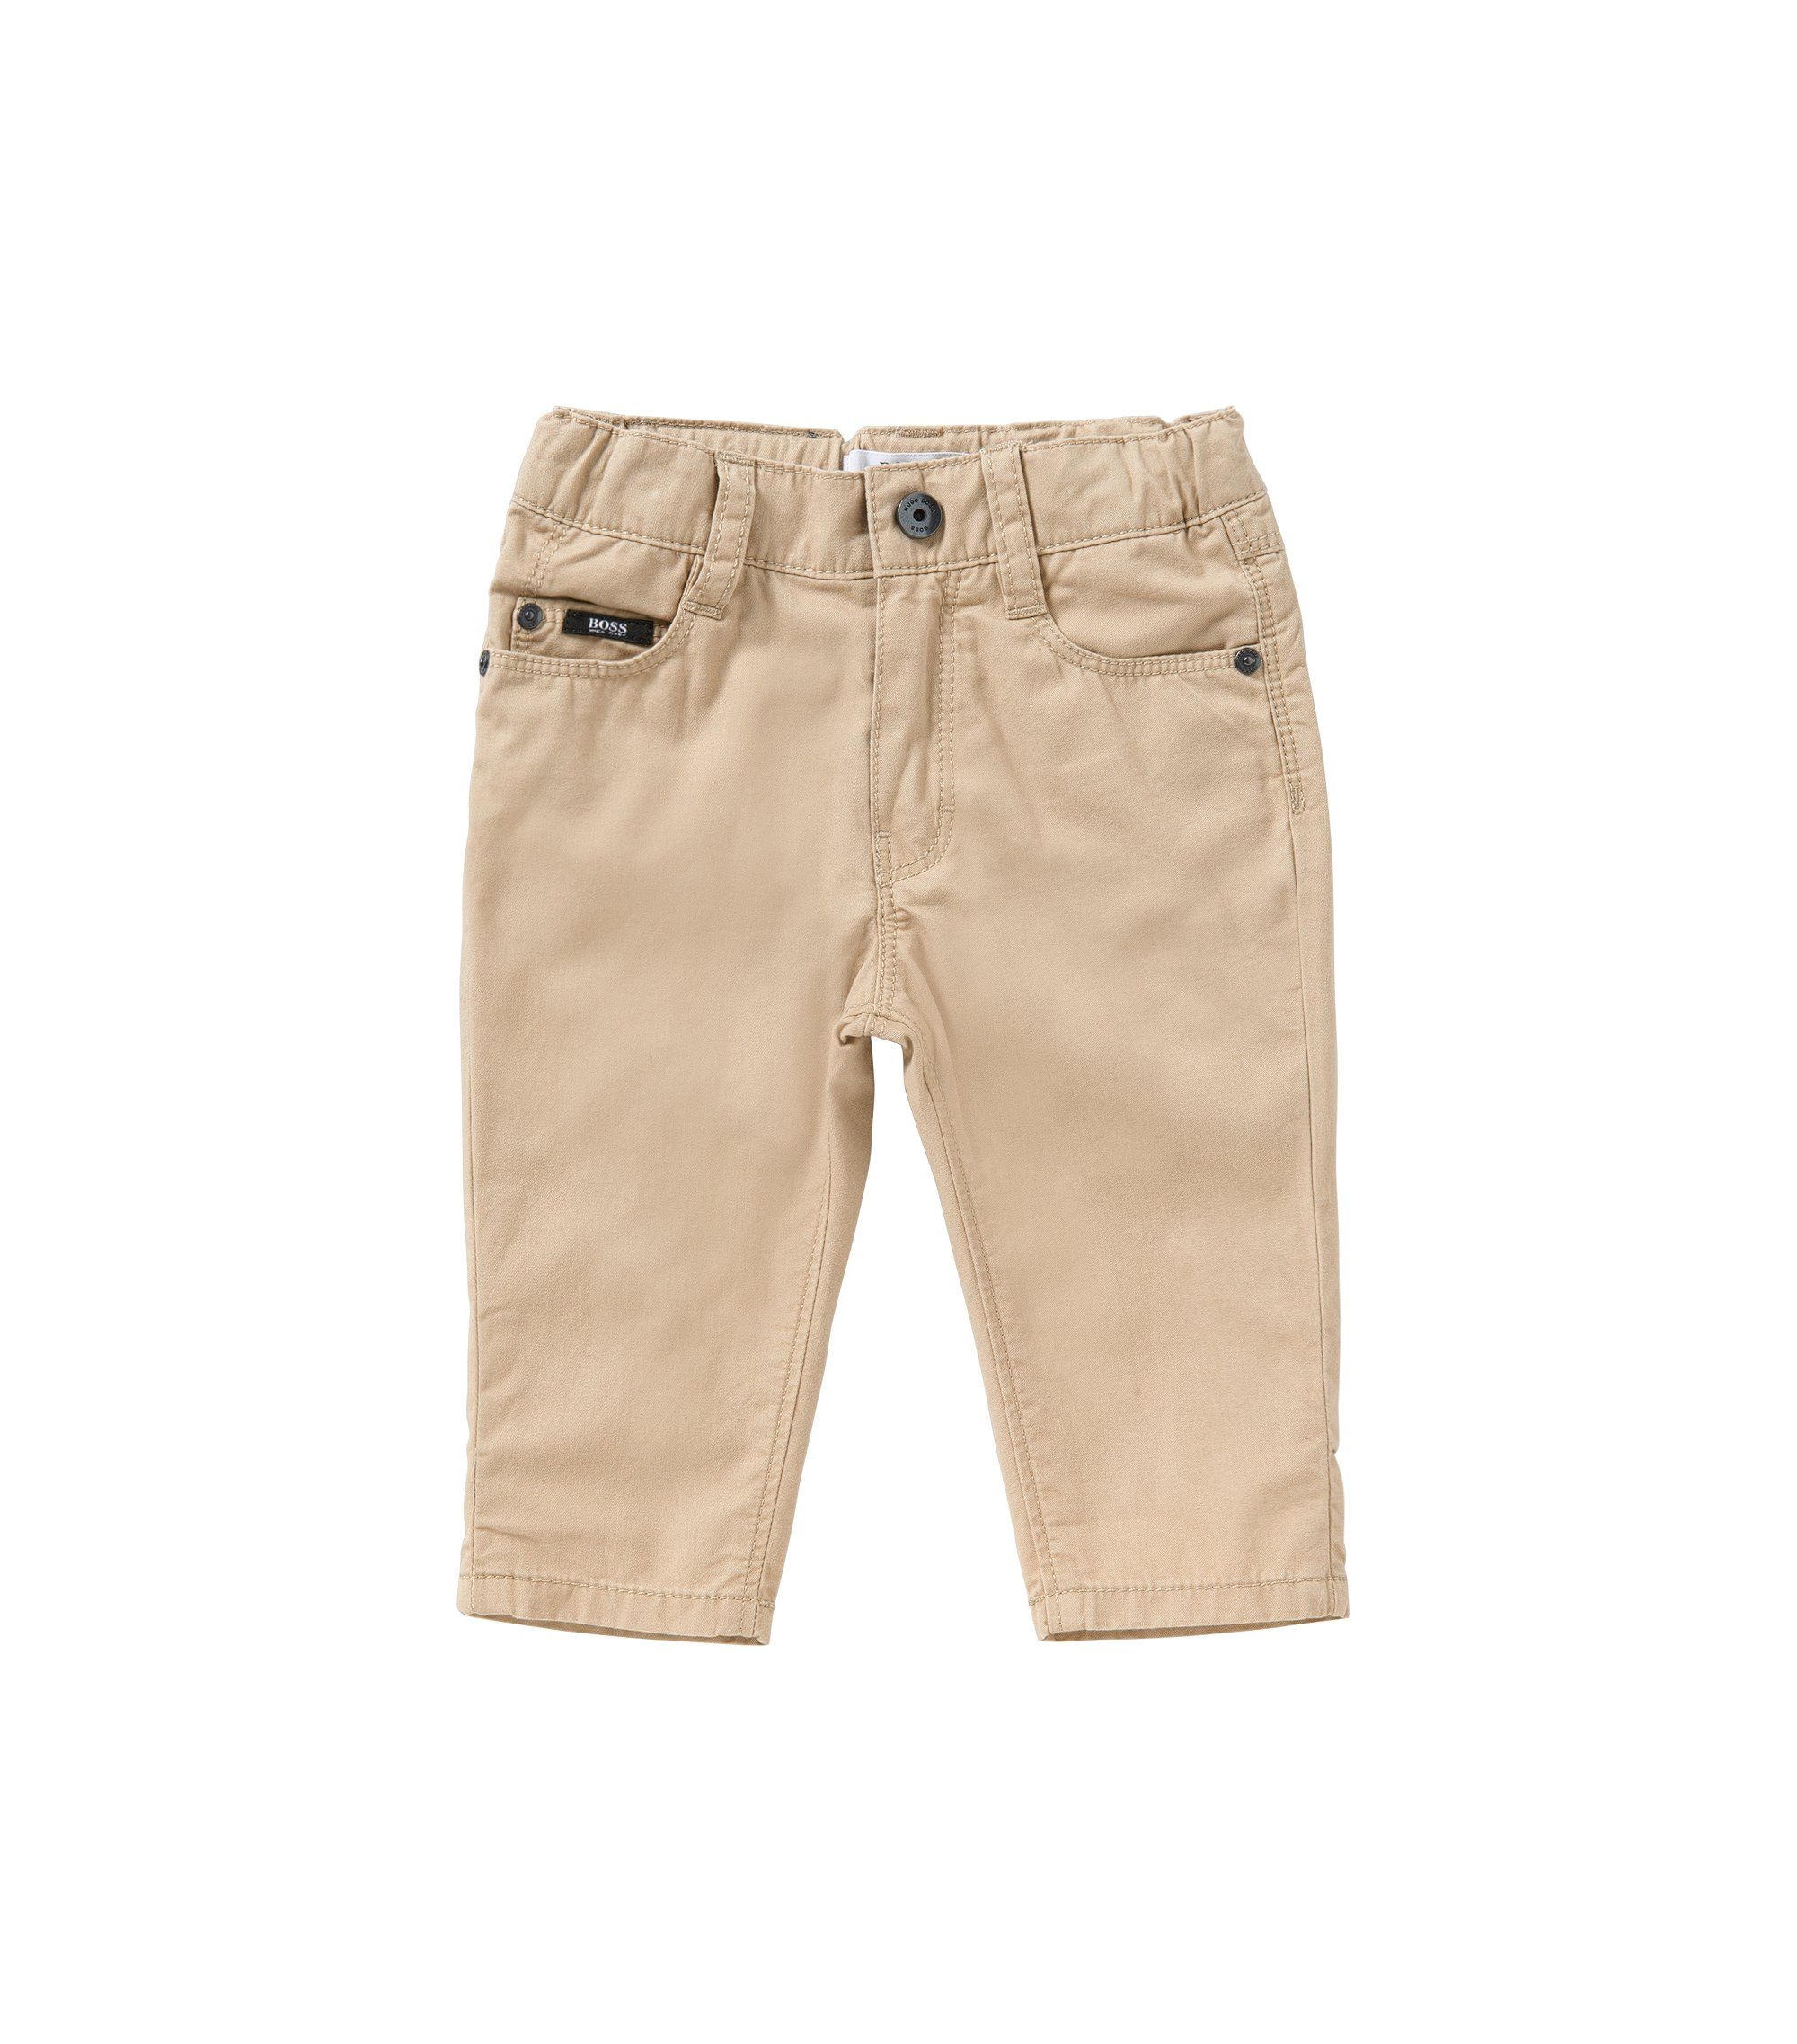 Regular-Fit Baby-Hose aus Baumwolle im Five-Pocket-Stil: 'J04225', Beige